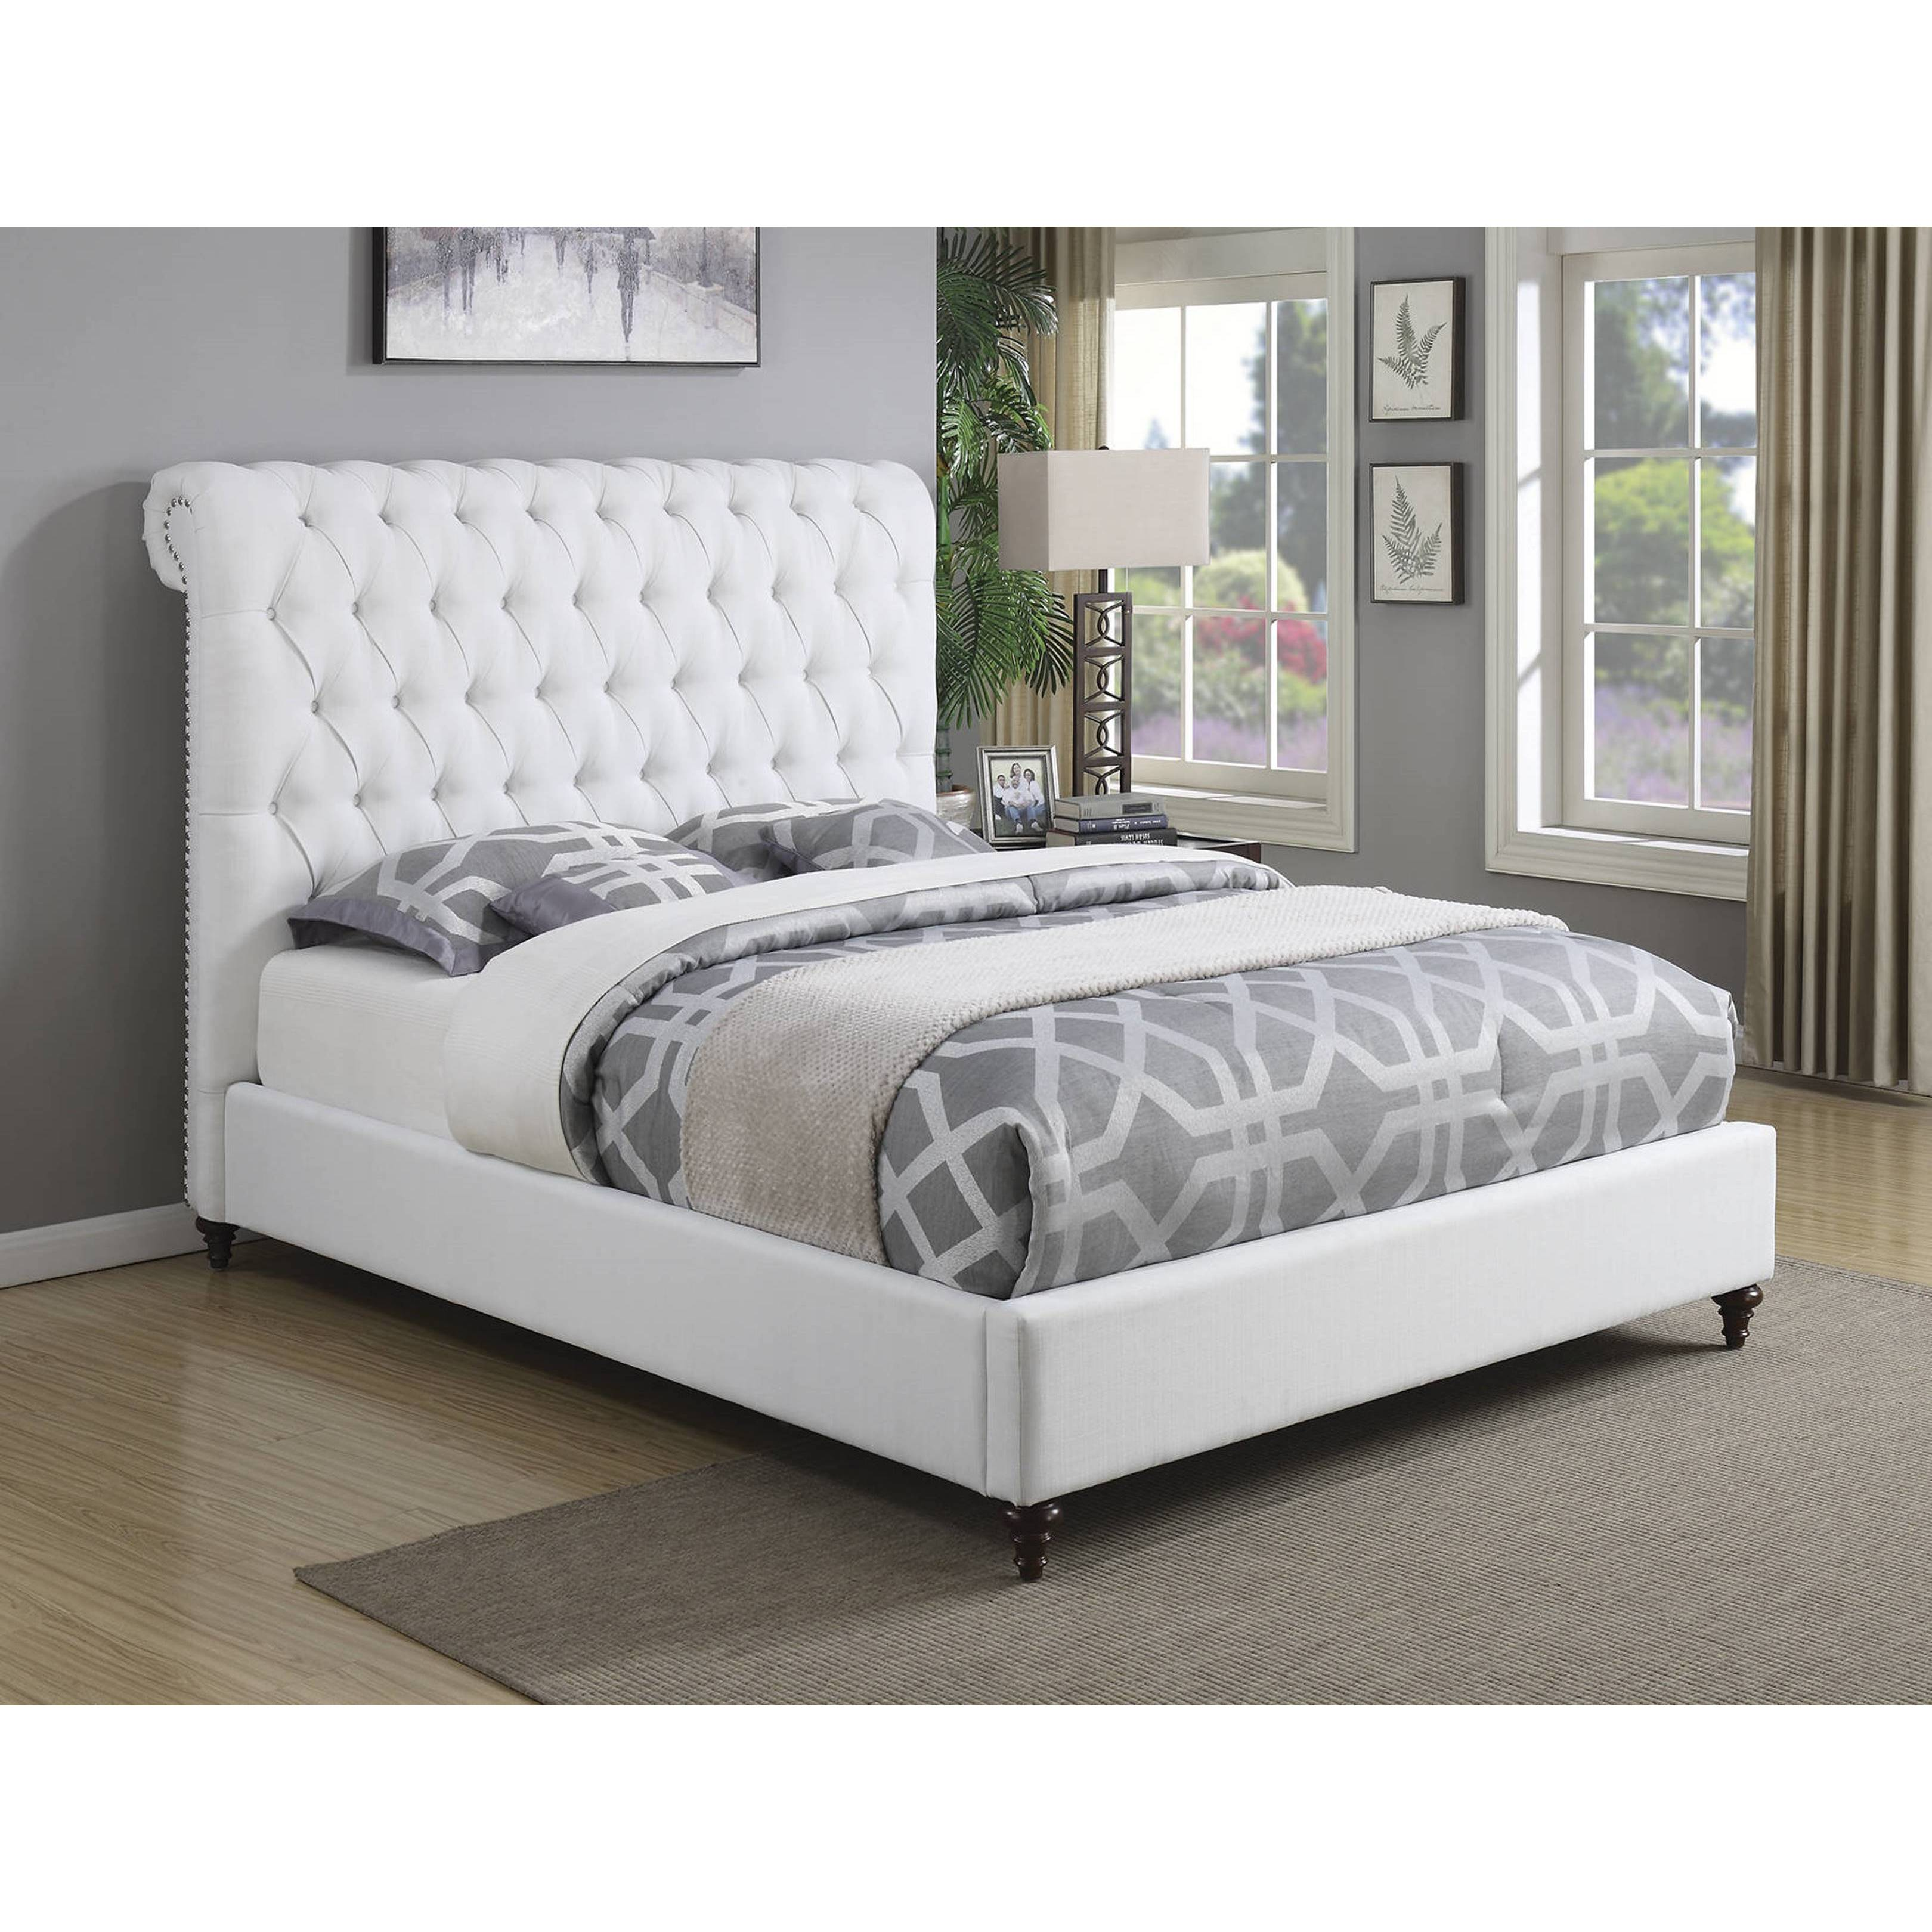 Modern Design Upholstered Bed With Diamond Button Tufted Headboard And Nailhead Trim Overstock 16305351